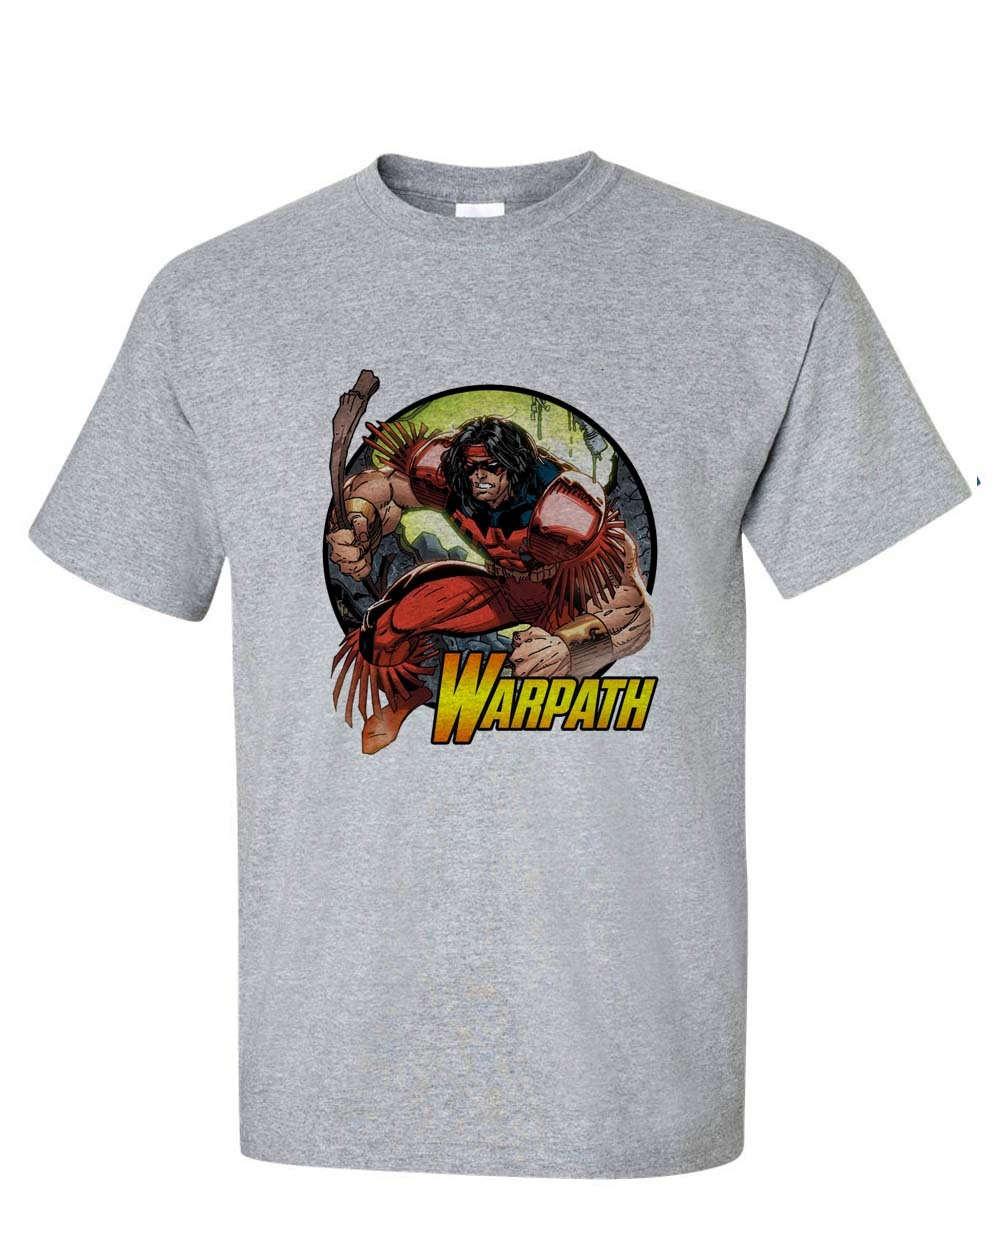 Warpath marvel t shirt x men x force mutant comic books graphic tee for sale online store